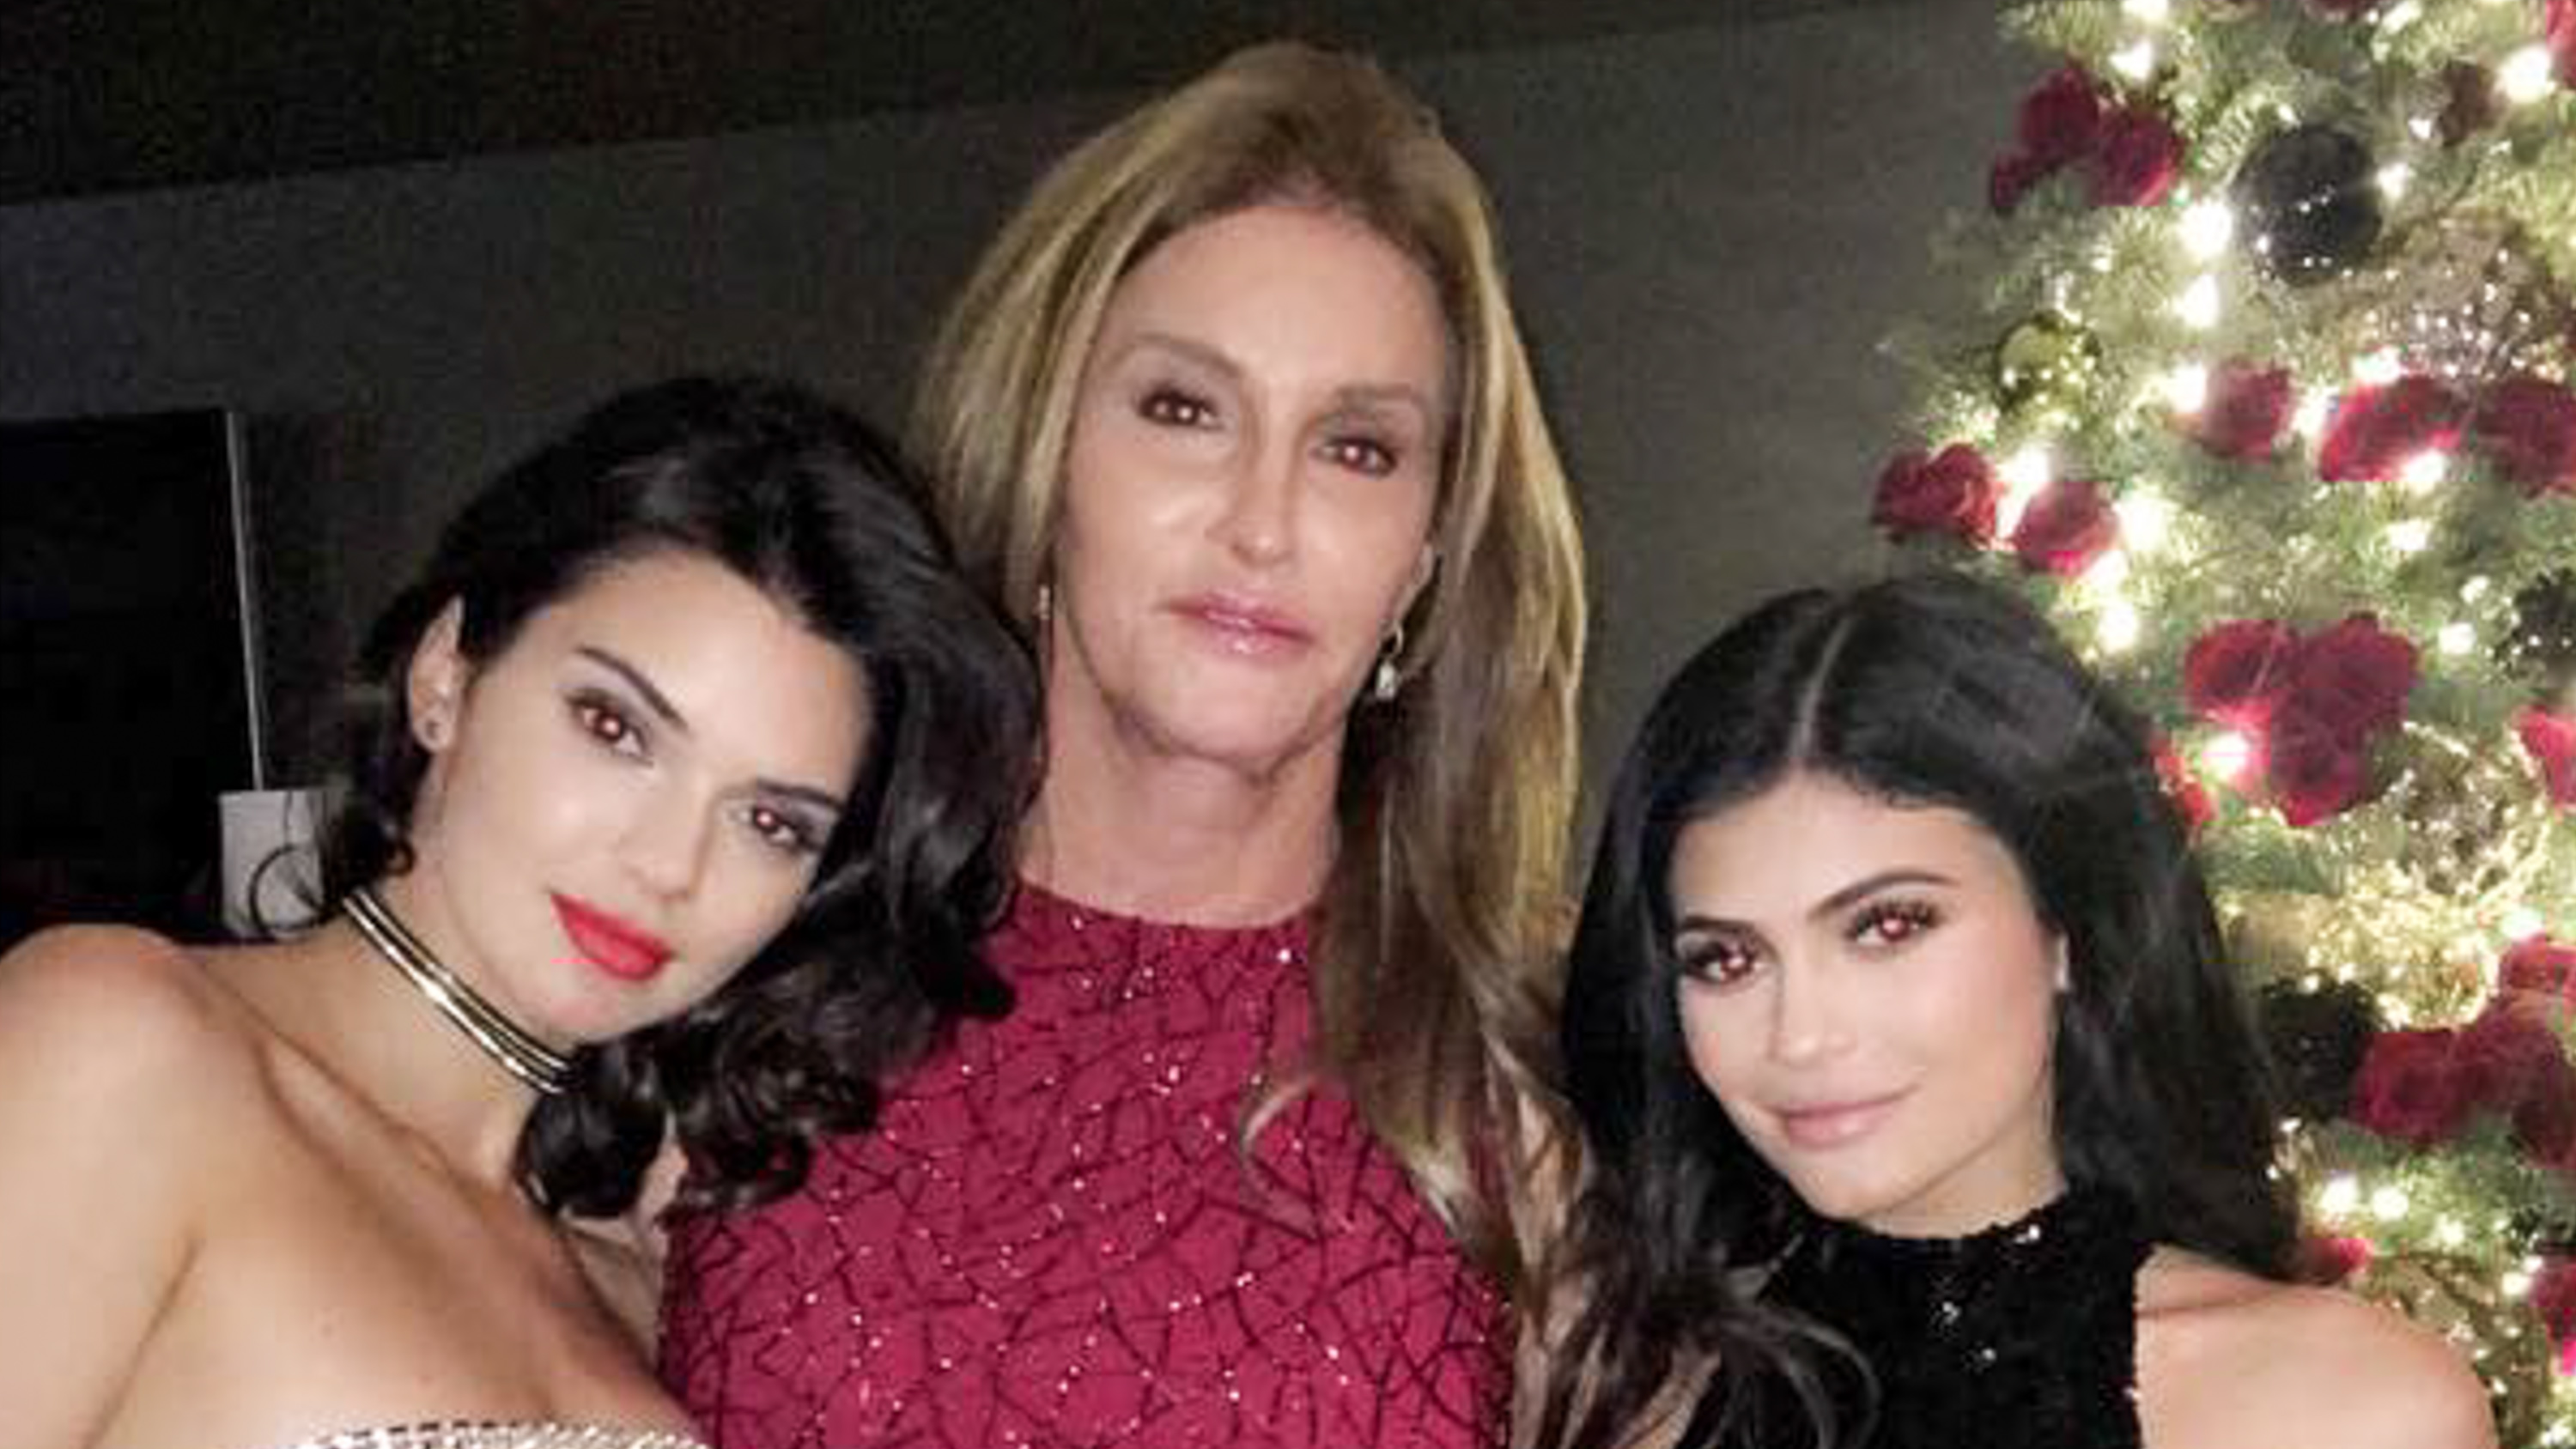 IN PHOTOS: Kardashians, Jenners at Christmas party 2016